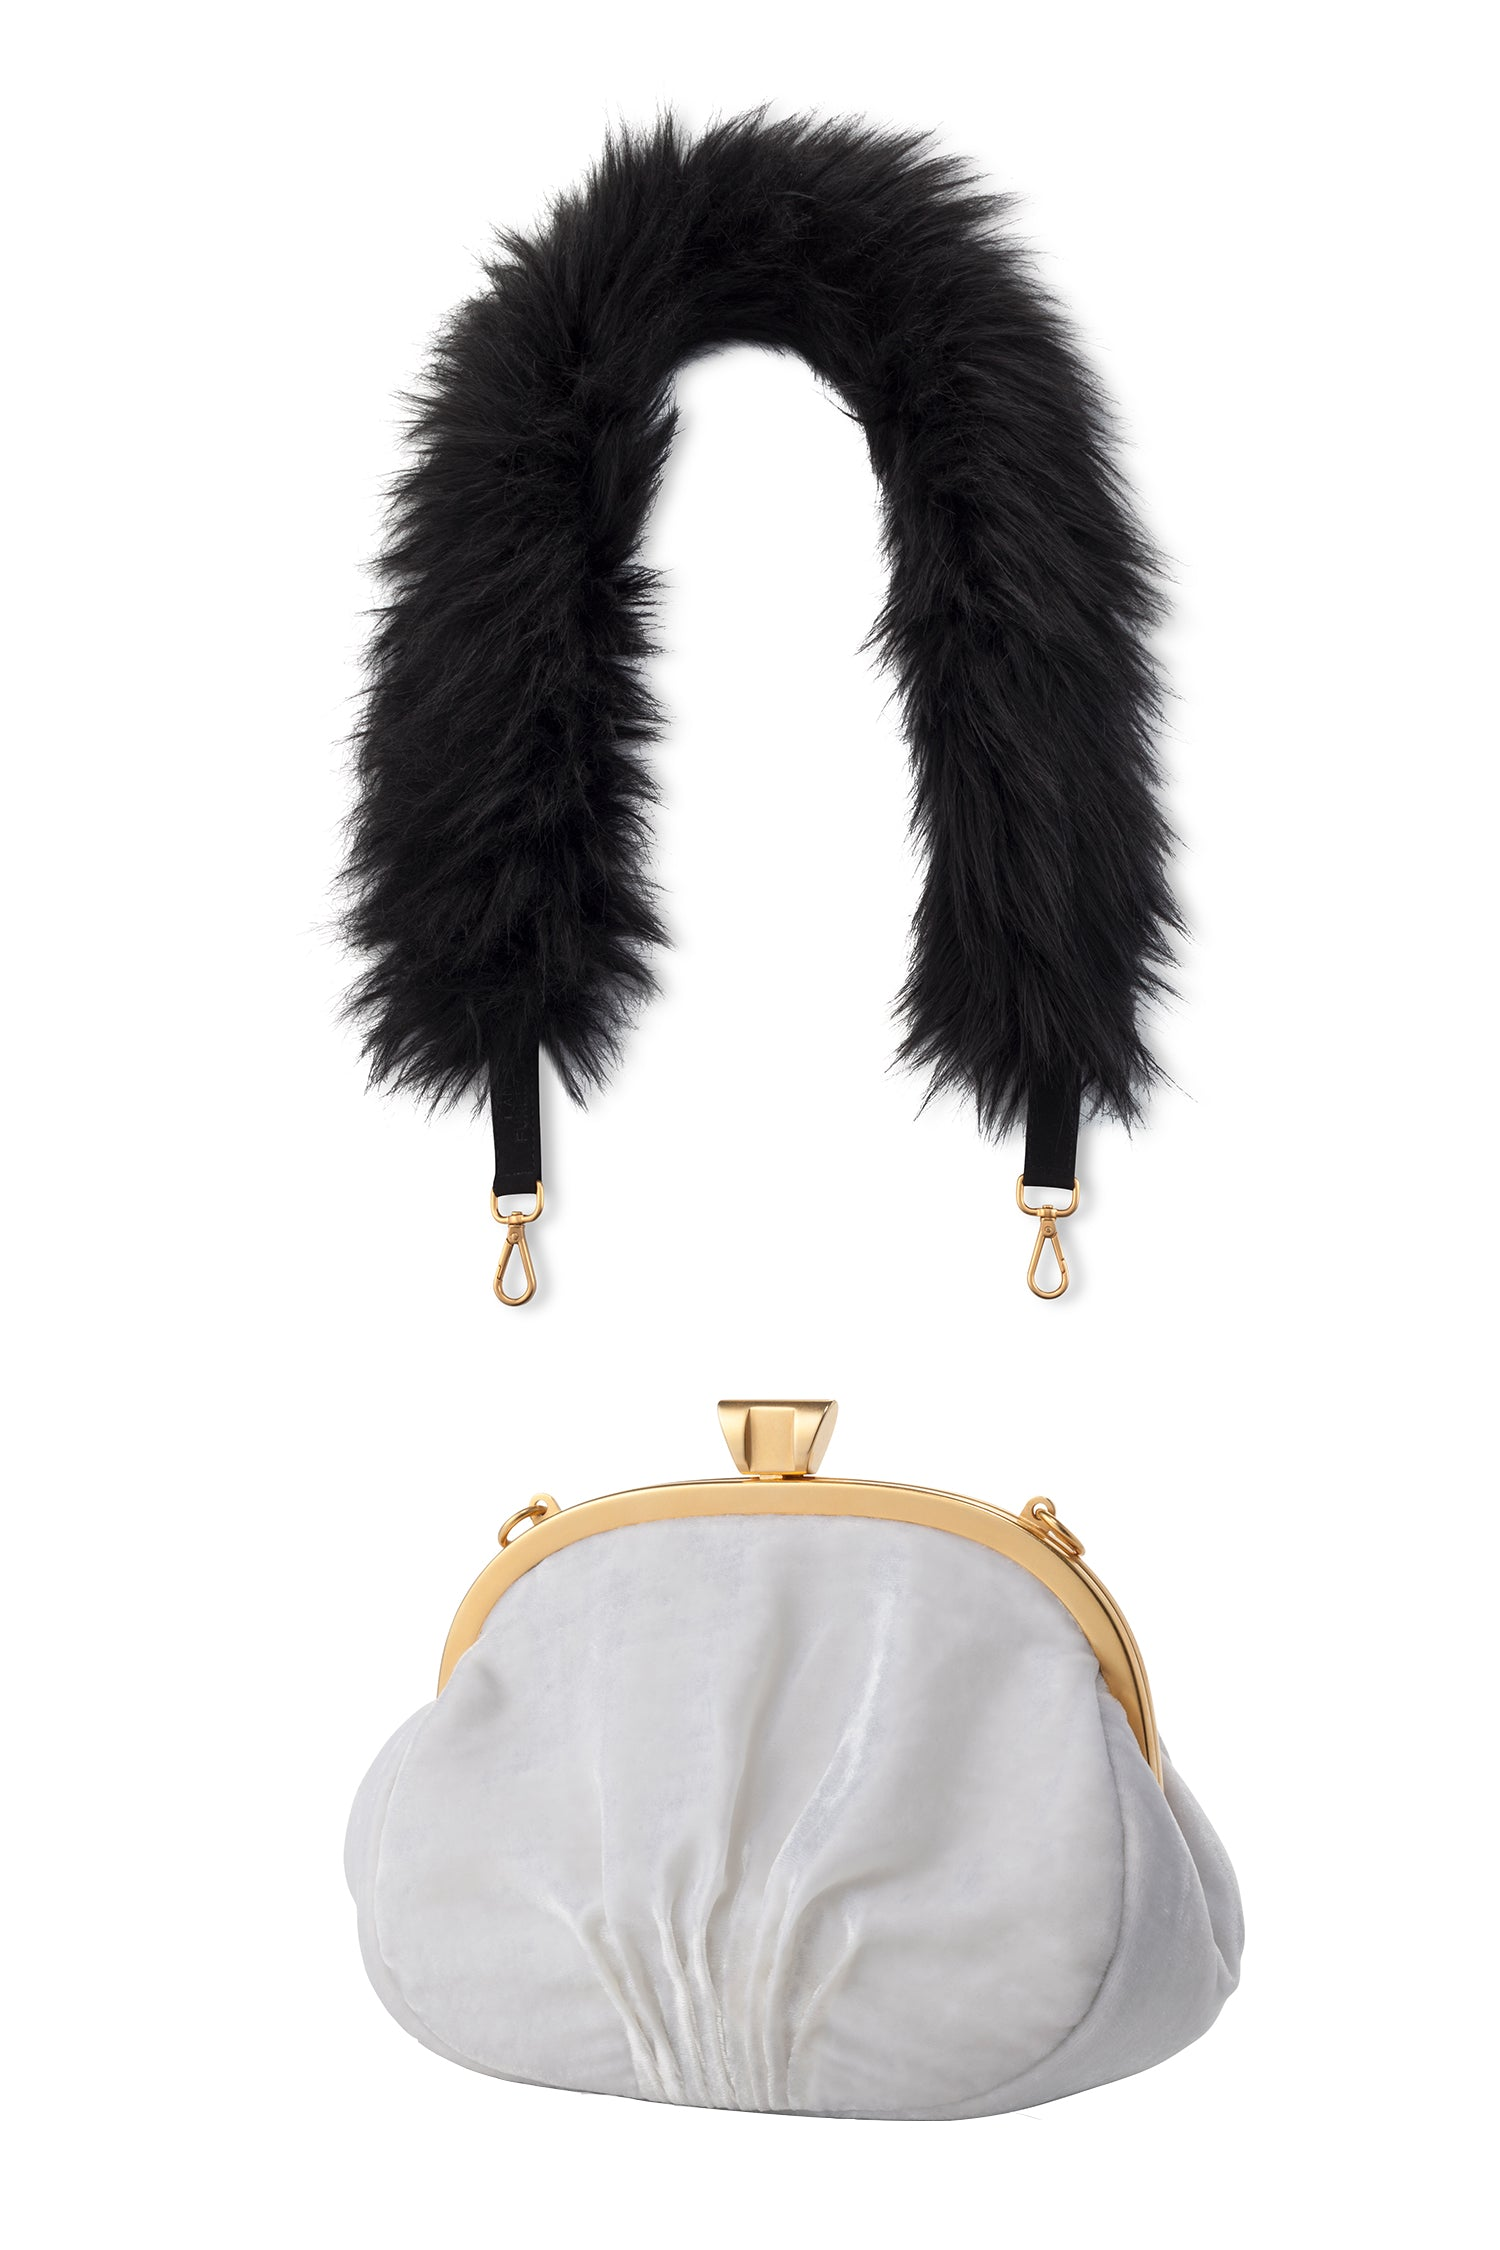 A Packshot Of Marei1998's Forget Me Not Velvet Purse In White Color. Made From Lustrous Velvet And Topped With Gold Plated Brass Clasp For Smooth Closure. The Puffy Silhouette Is Accentuated By A Lush Faux Fur Strap In Contrasting Black Color, Creating A Contemporary Vintage Look. Front View.